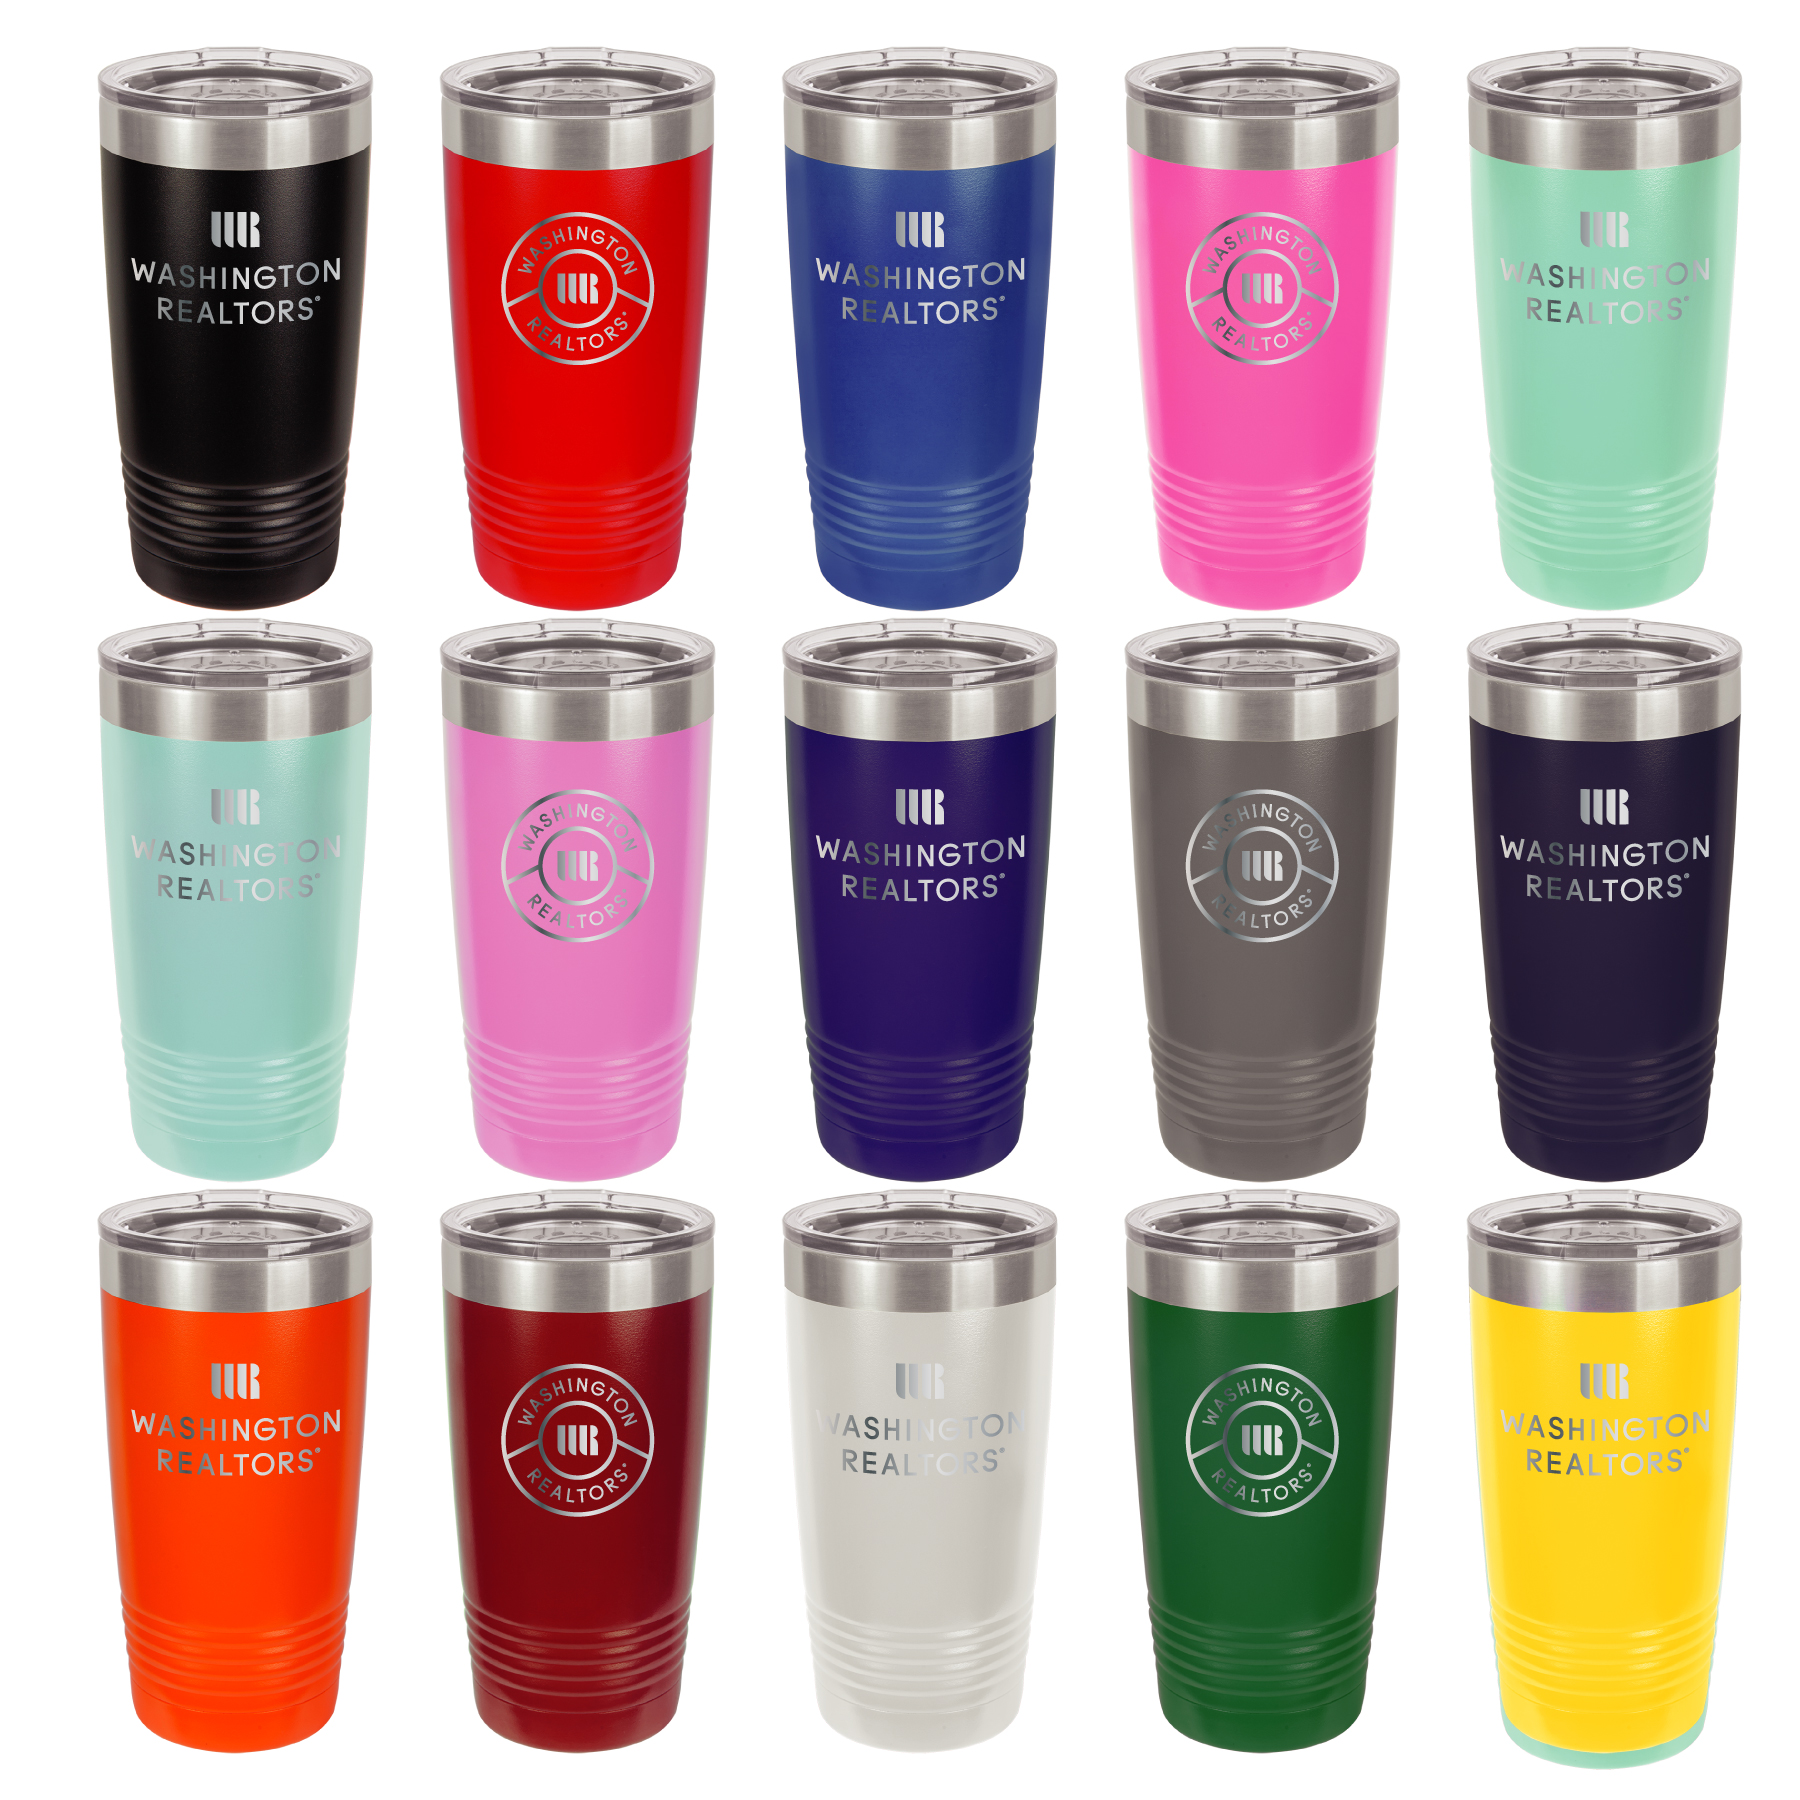 Washington REALTORS® Insulated 20 oz Tumbler with Lid Cups,Mugs,Tumblers,Drinks,Drinkwares,Yeti,Yetis,Copper,Insulated,Cooler